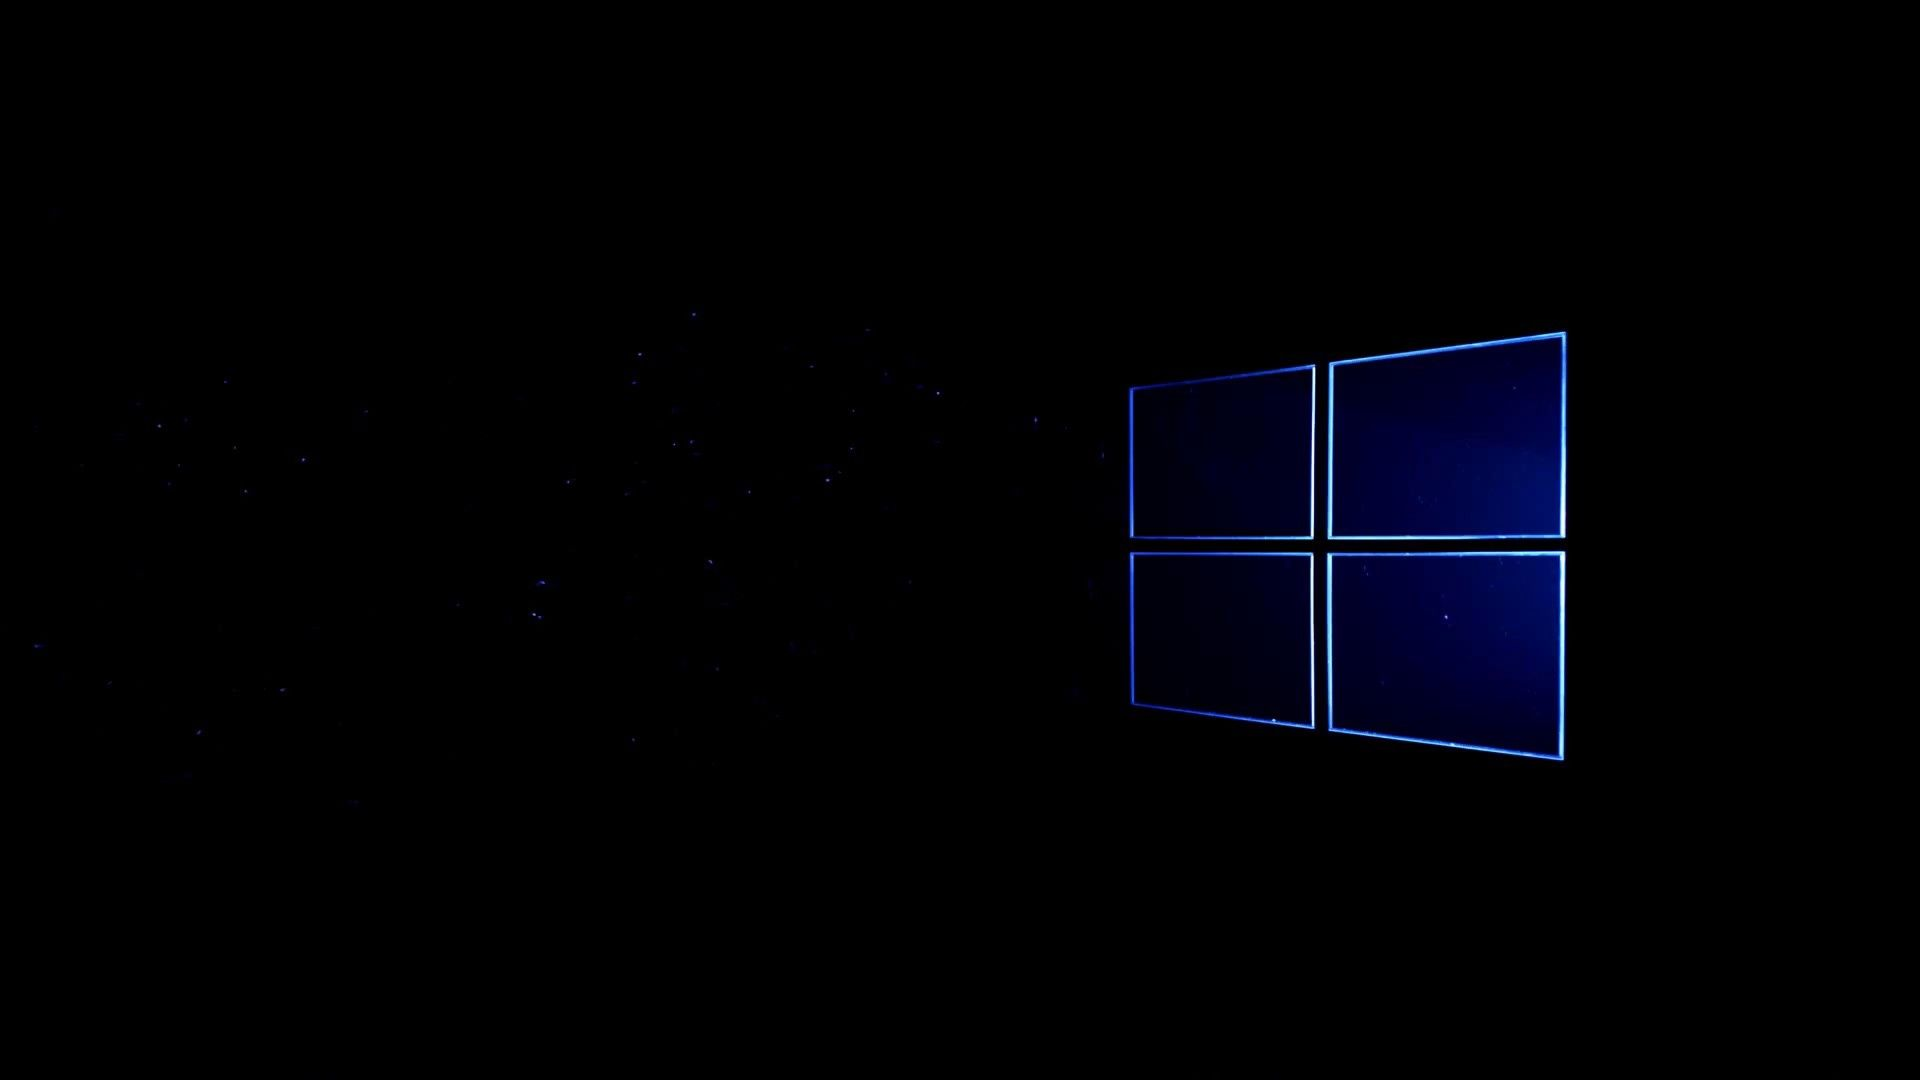 windows wallpapers page hd wallpapers wallpapers windows